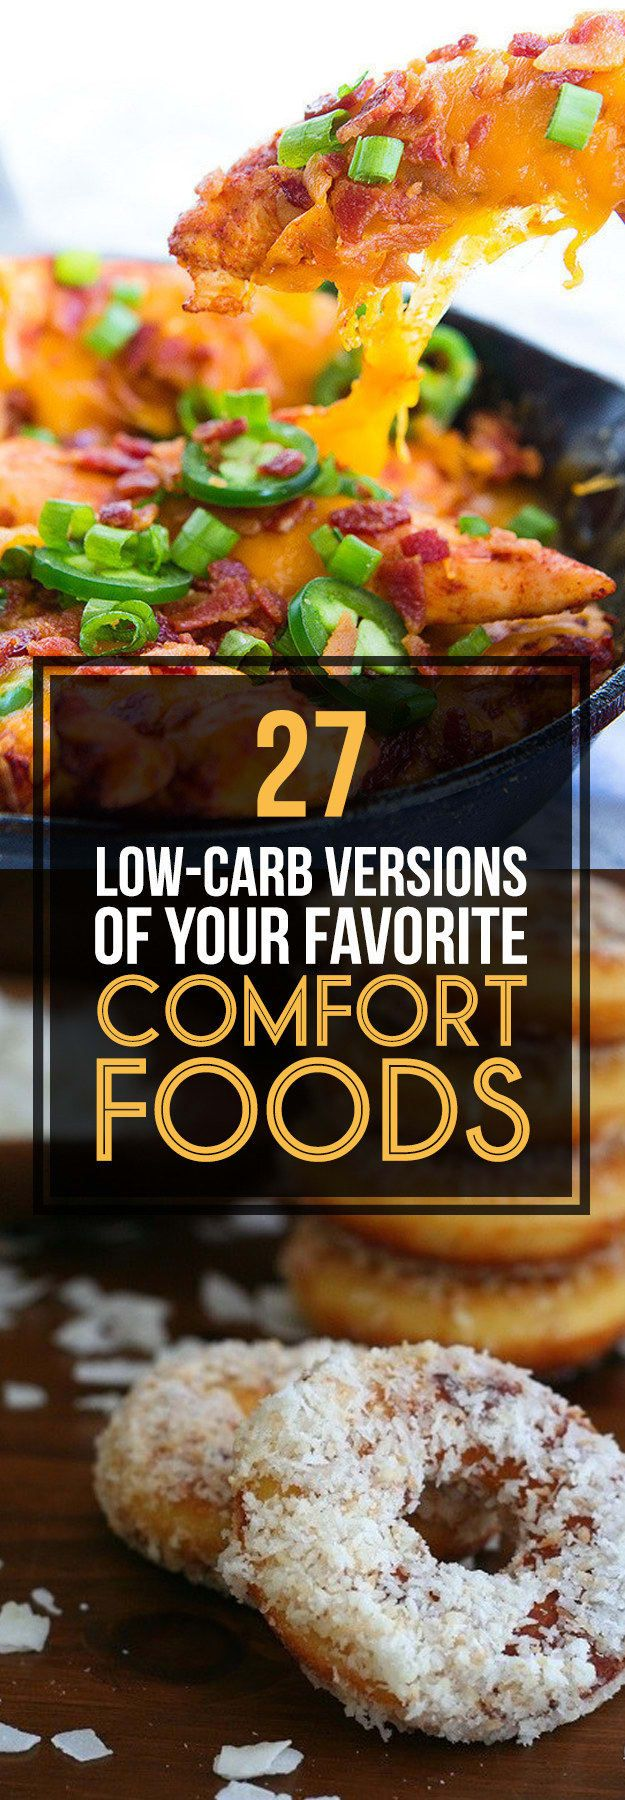 27 Low-Carb Versions Of Your Favorite Comfort Foods